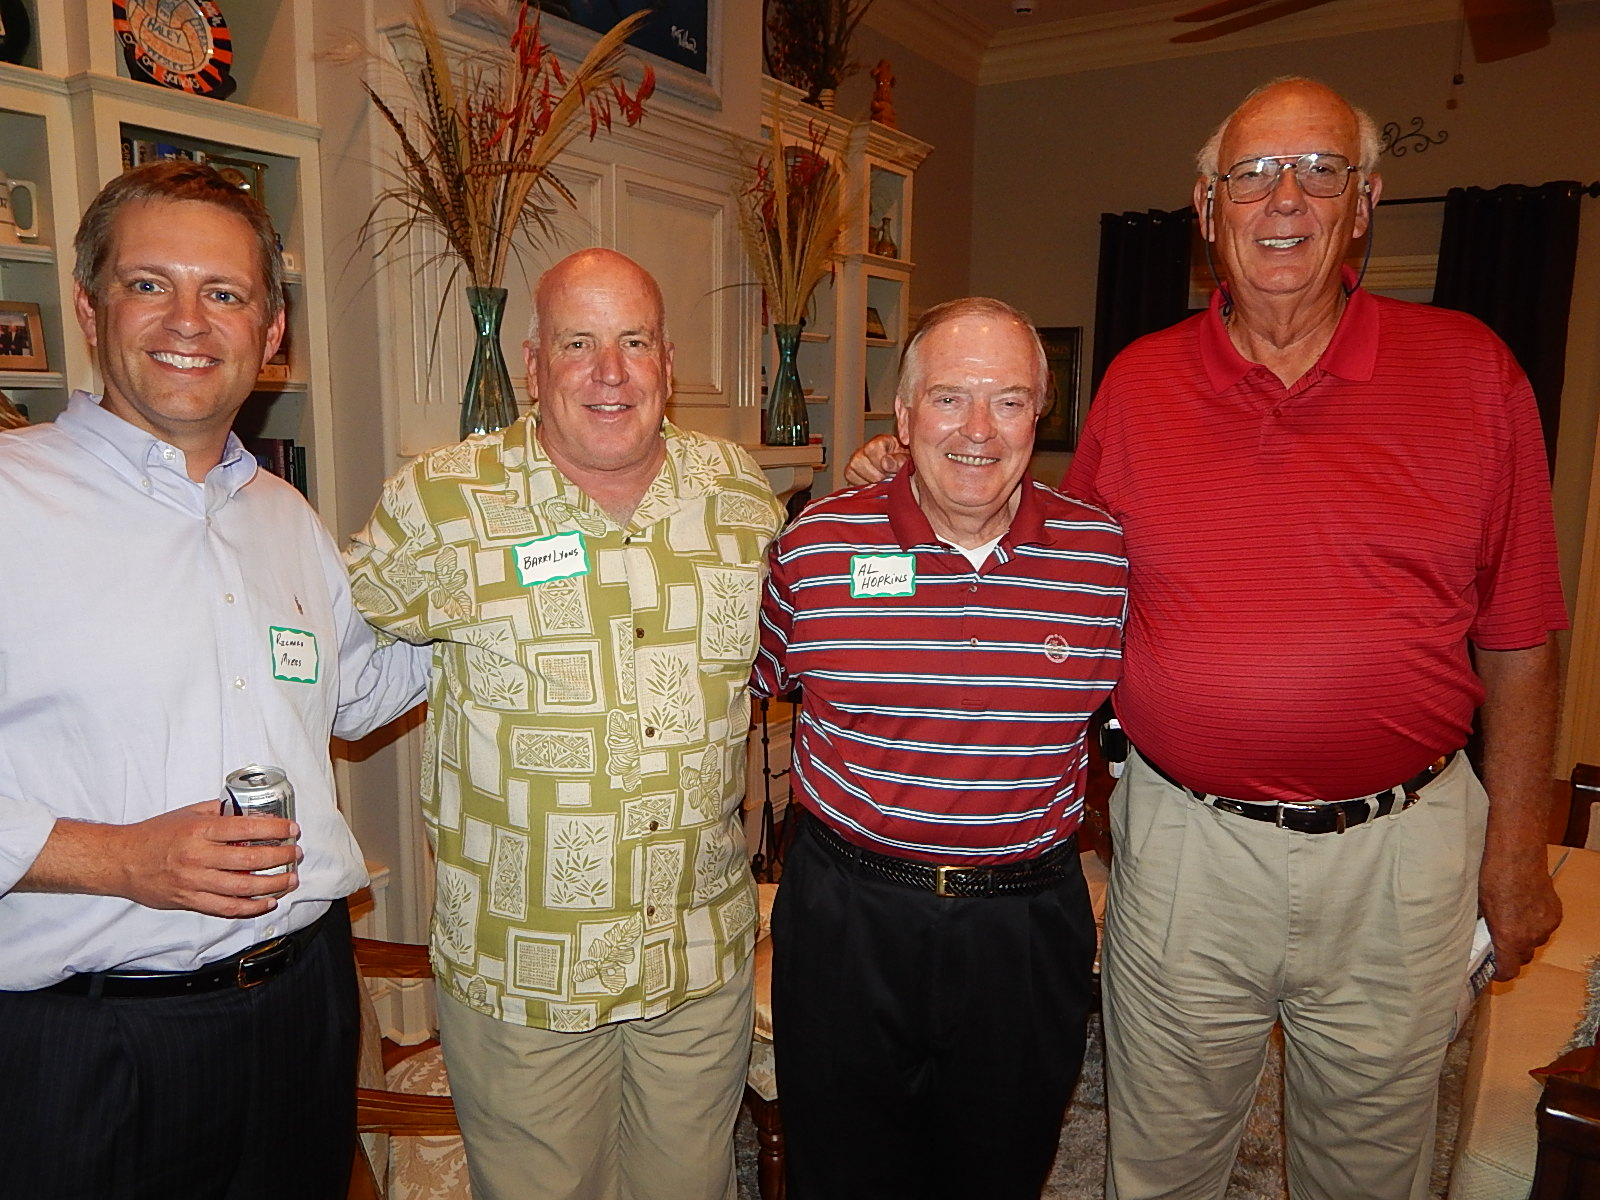 Photo: Richard Myers, National Alumni Association President; Barry Lyons, General Al Hopkins, and Tommy McKiernon enjoying each other's company at the alumni meeting.